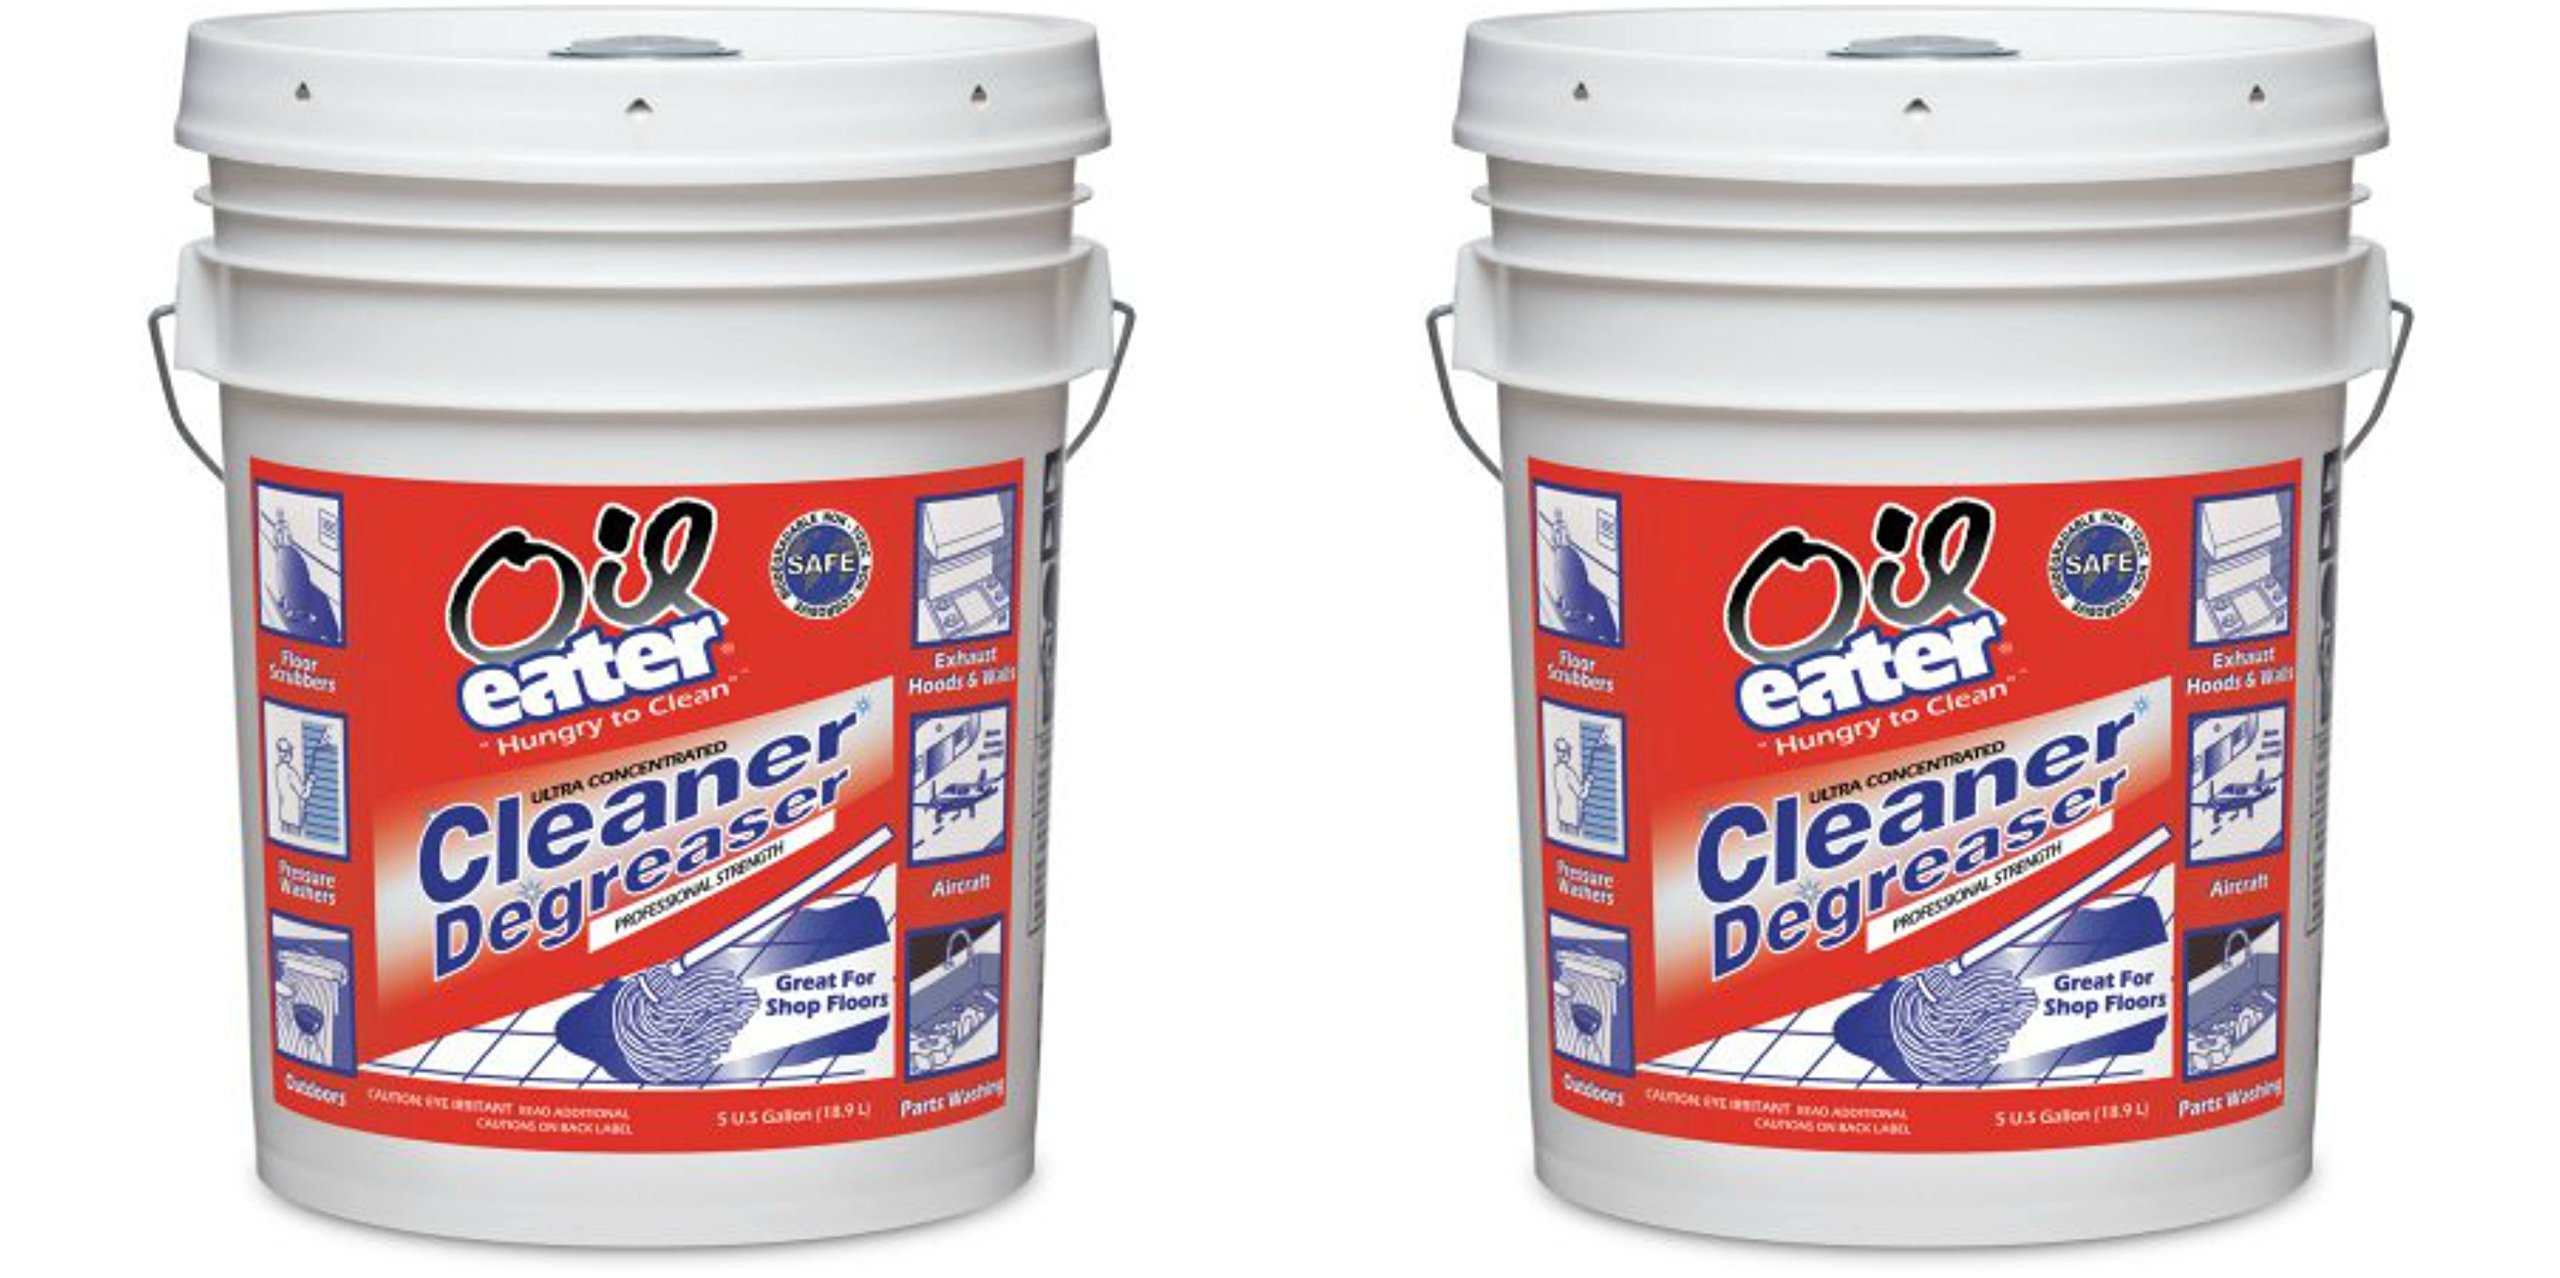 Oil Eater Ultra Concentrated Cleaner and Degreaser Professional Strength Original Formula, 5 Gallon Bucket, Pack of 2